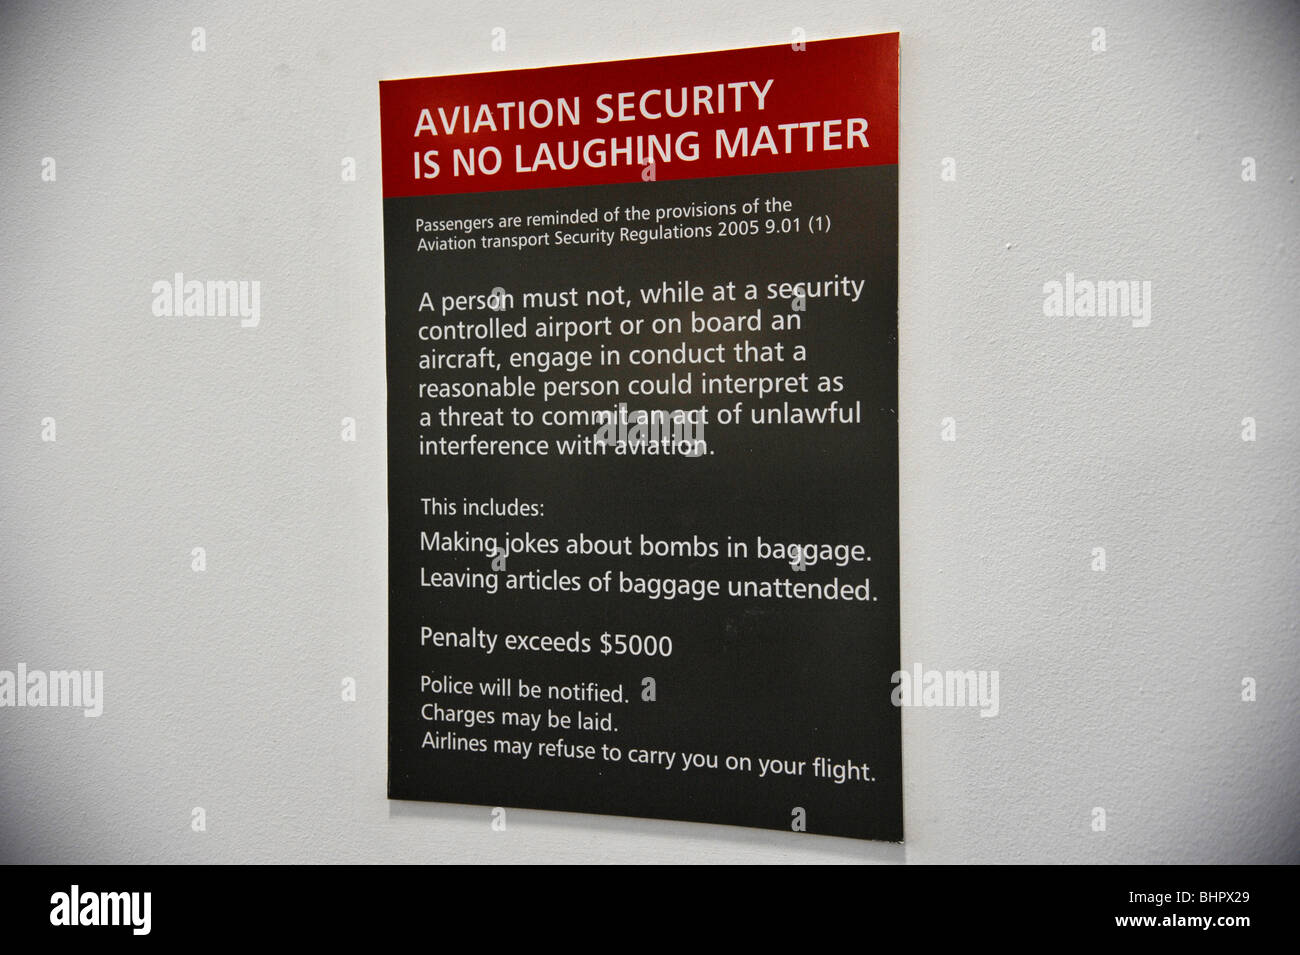 Aviation Security sign about laughing at Airline security. - Stock Image